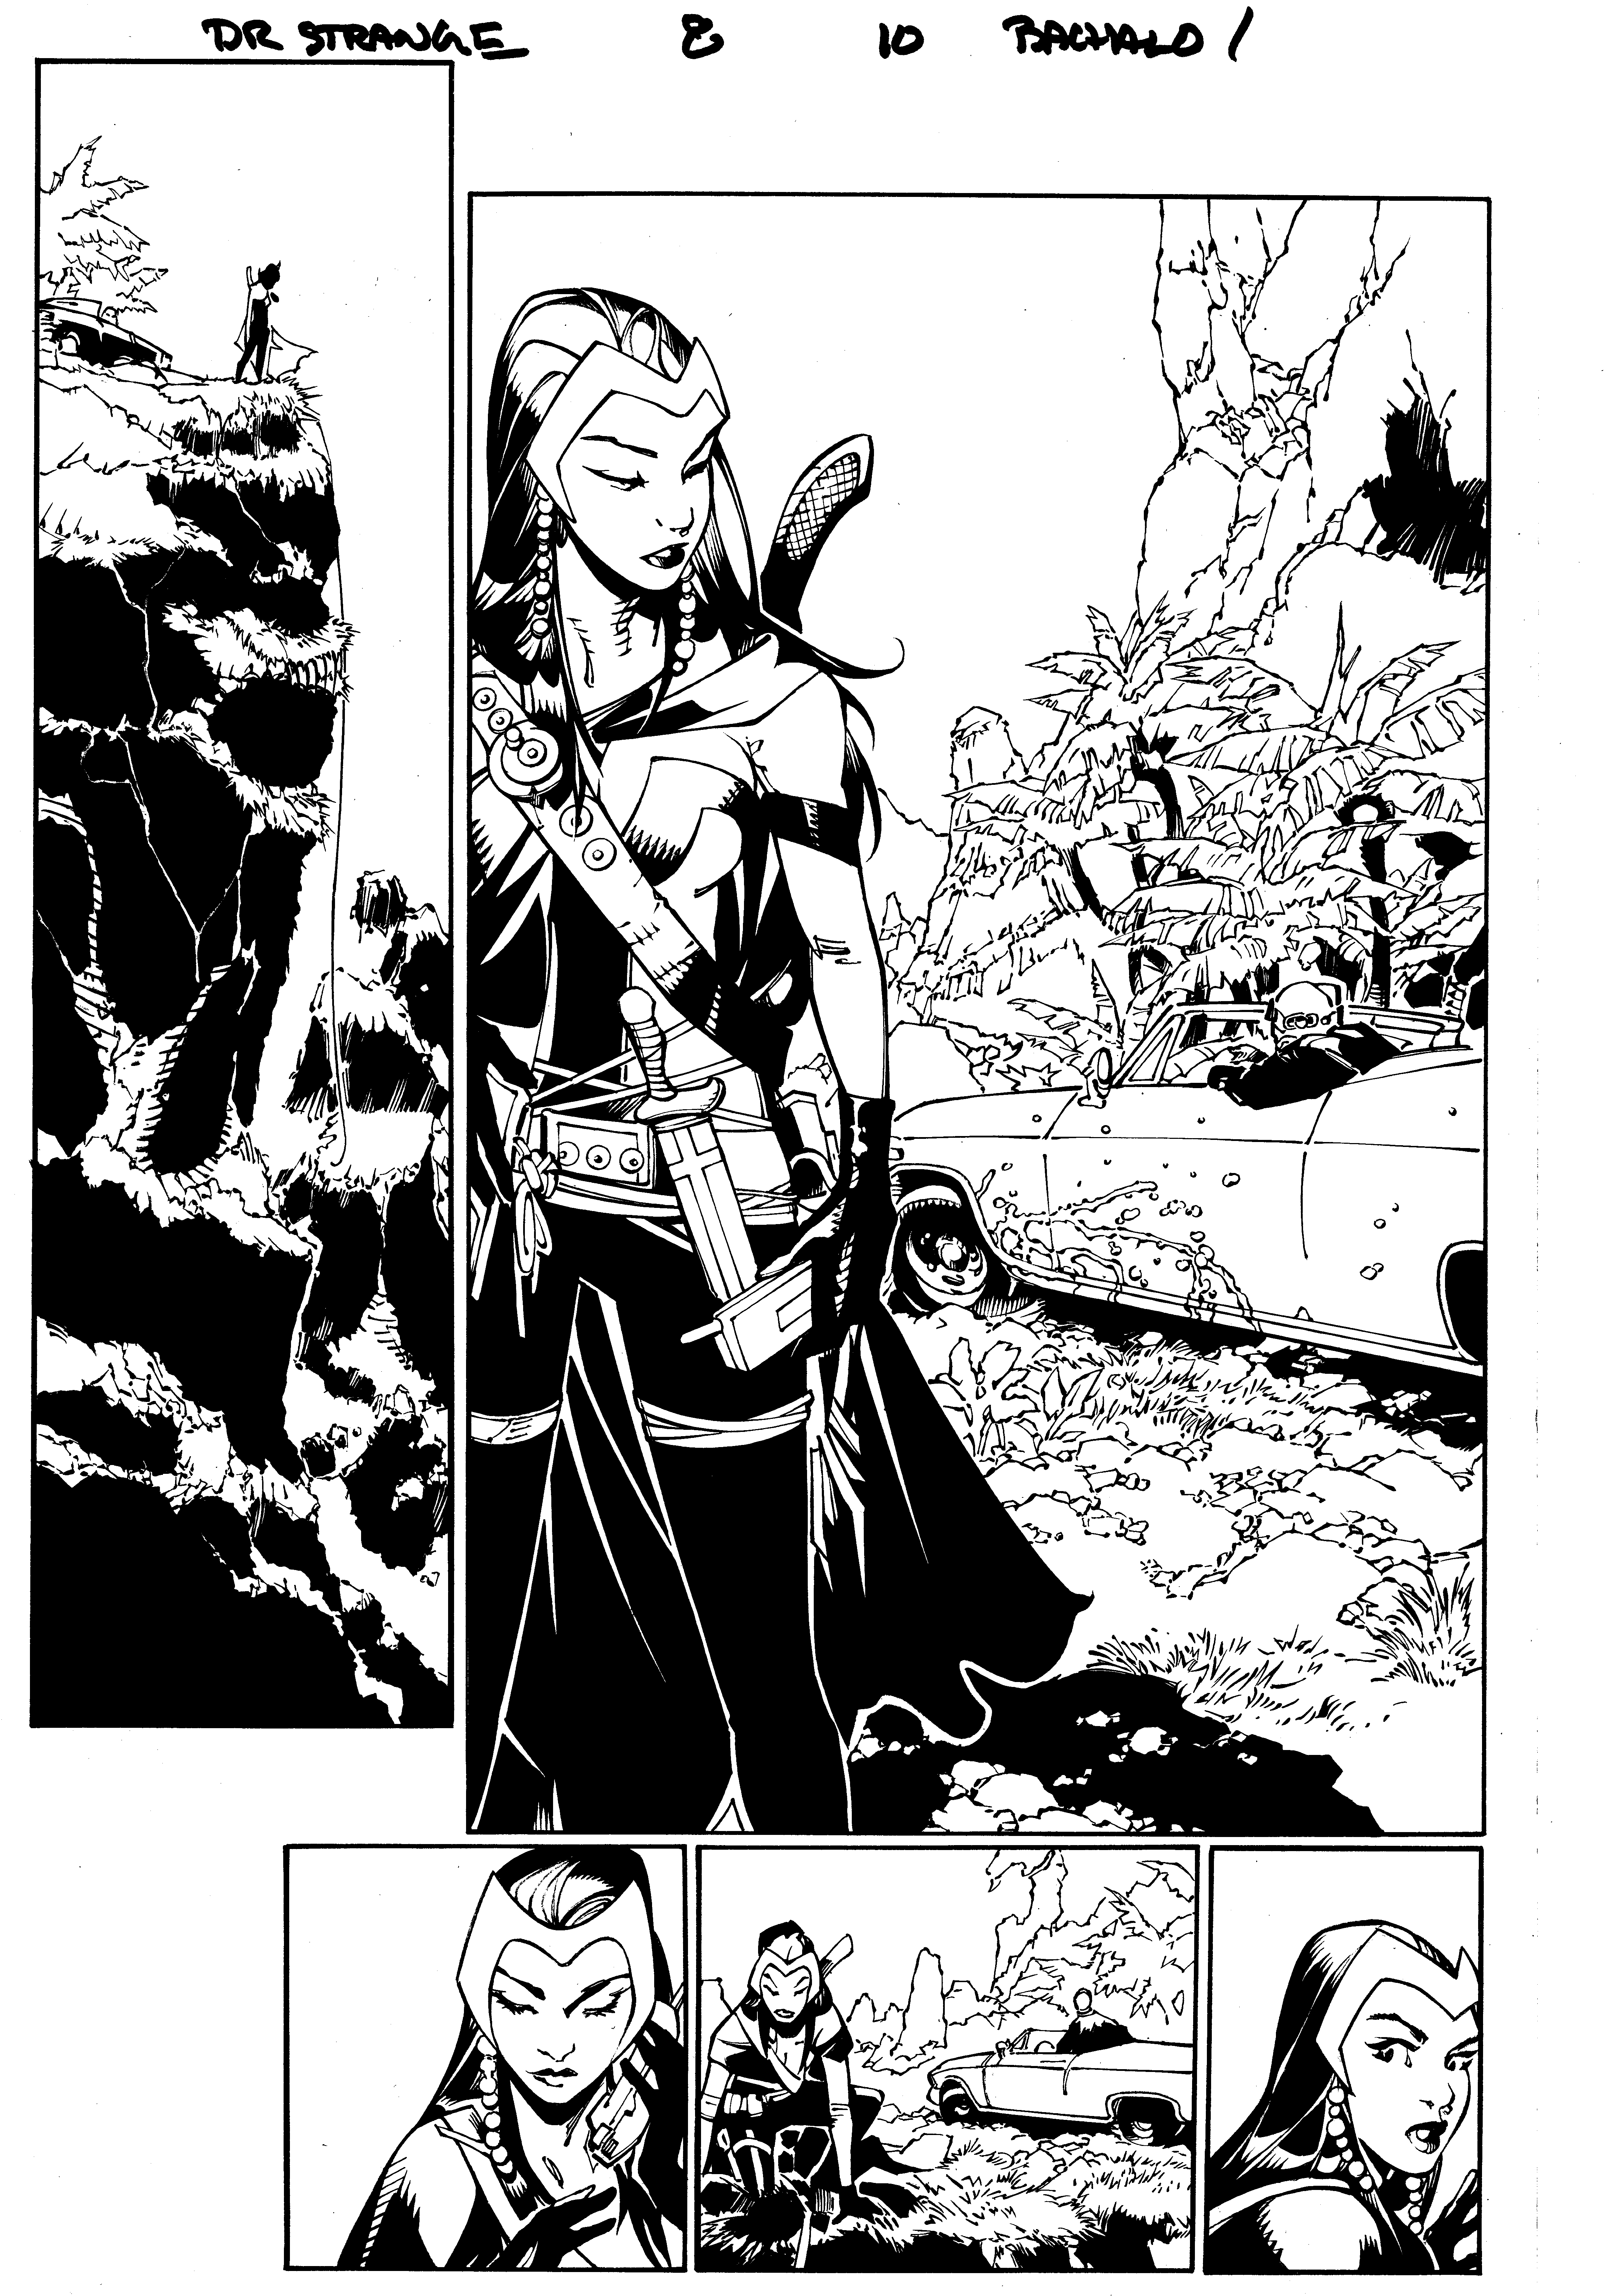 Doctor Strange 8, page 10 by MarkIrwin